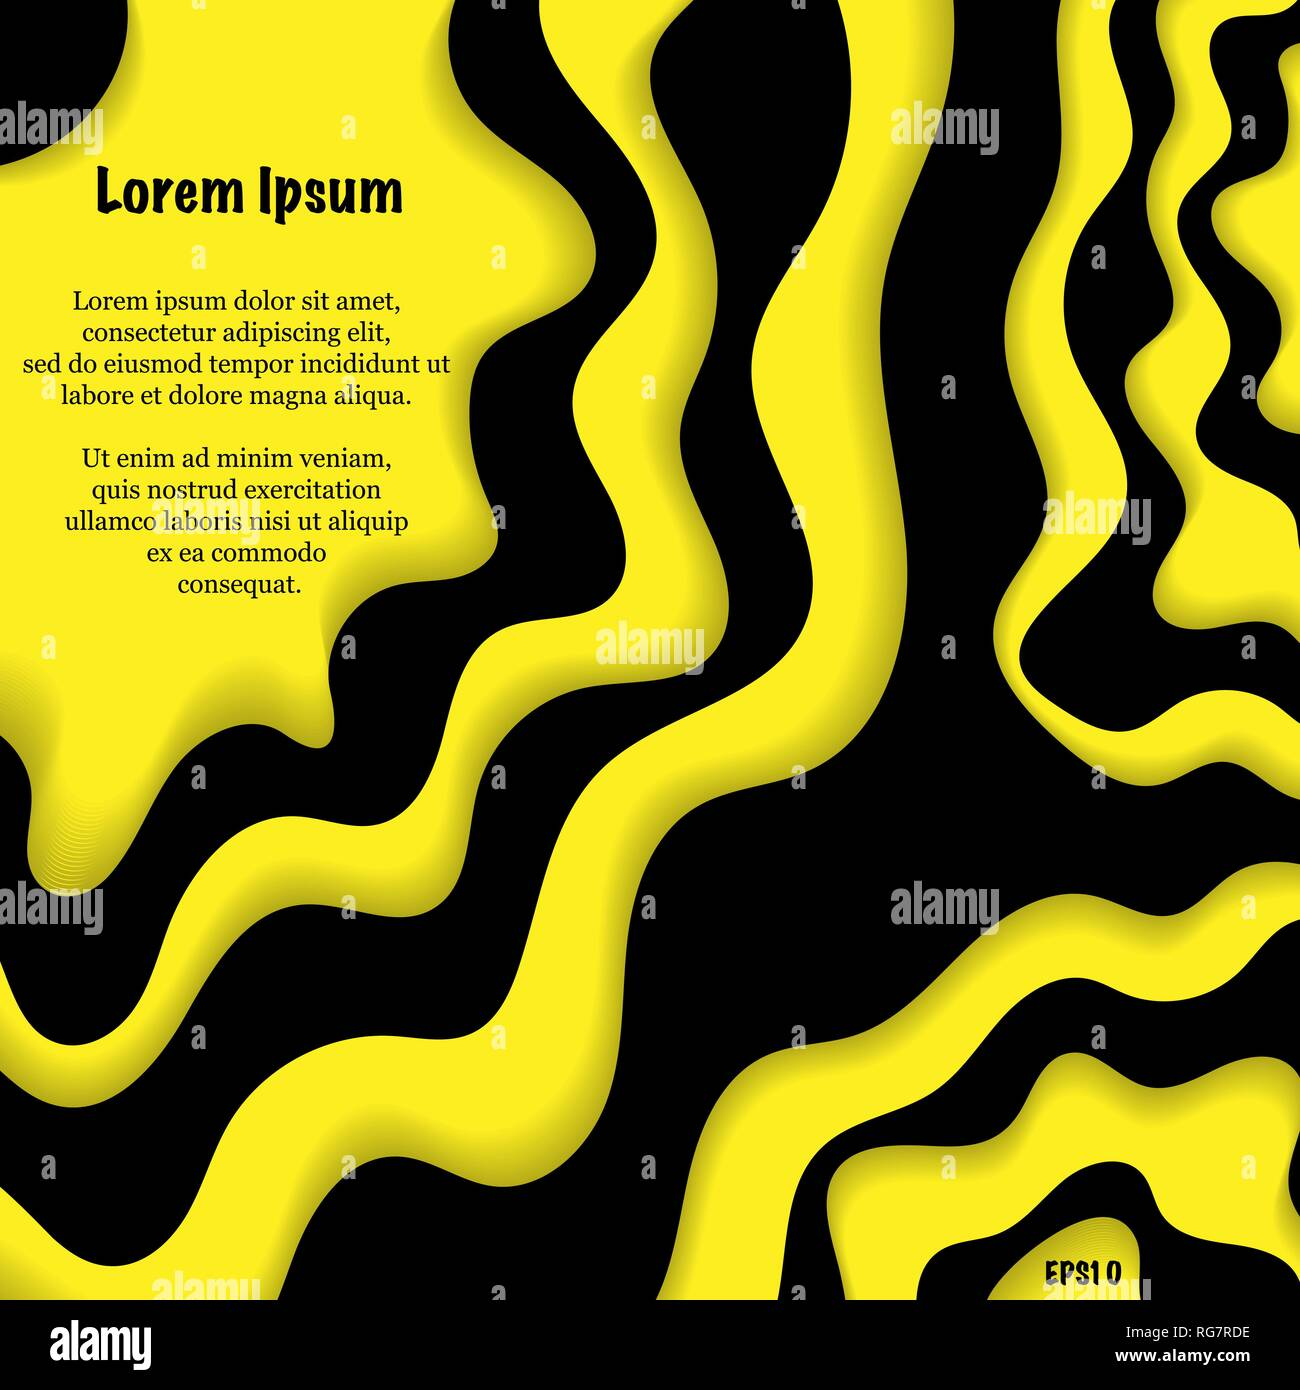 Abstract black and yellow cut paper background with sample text - Stock Image